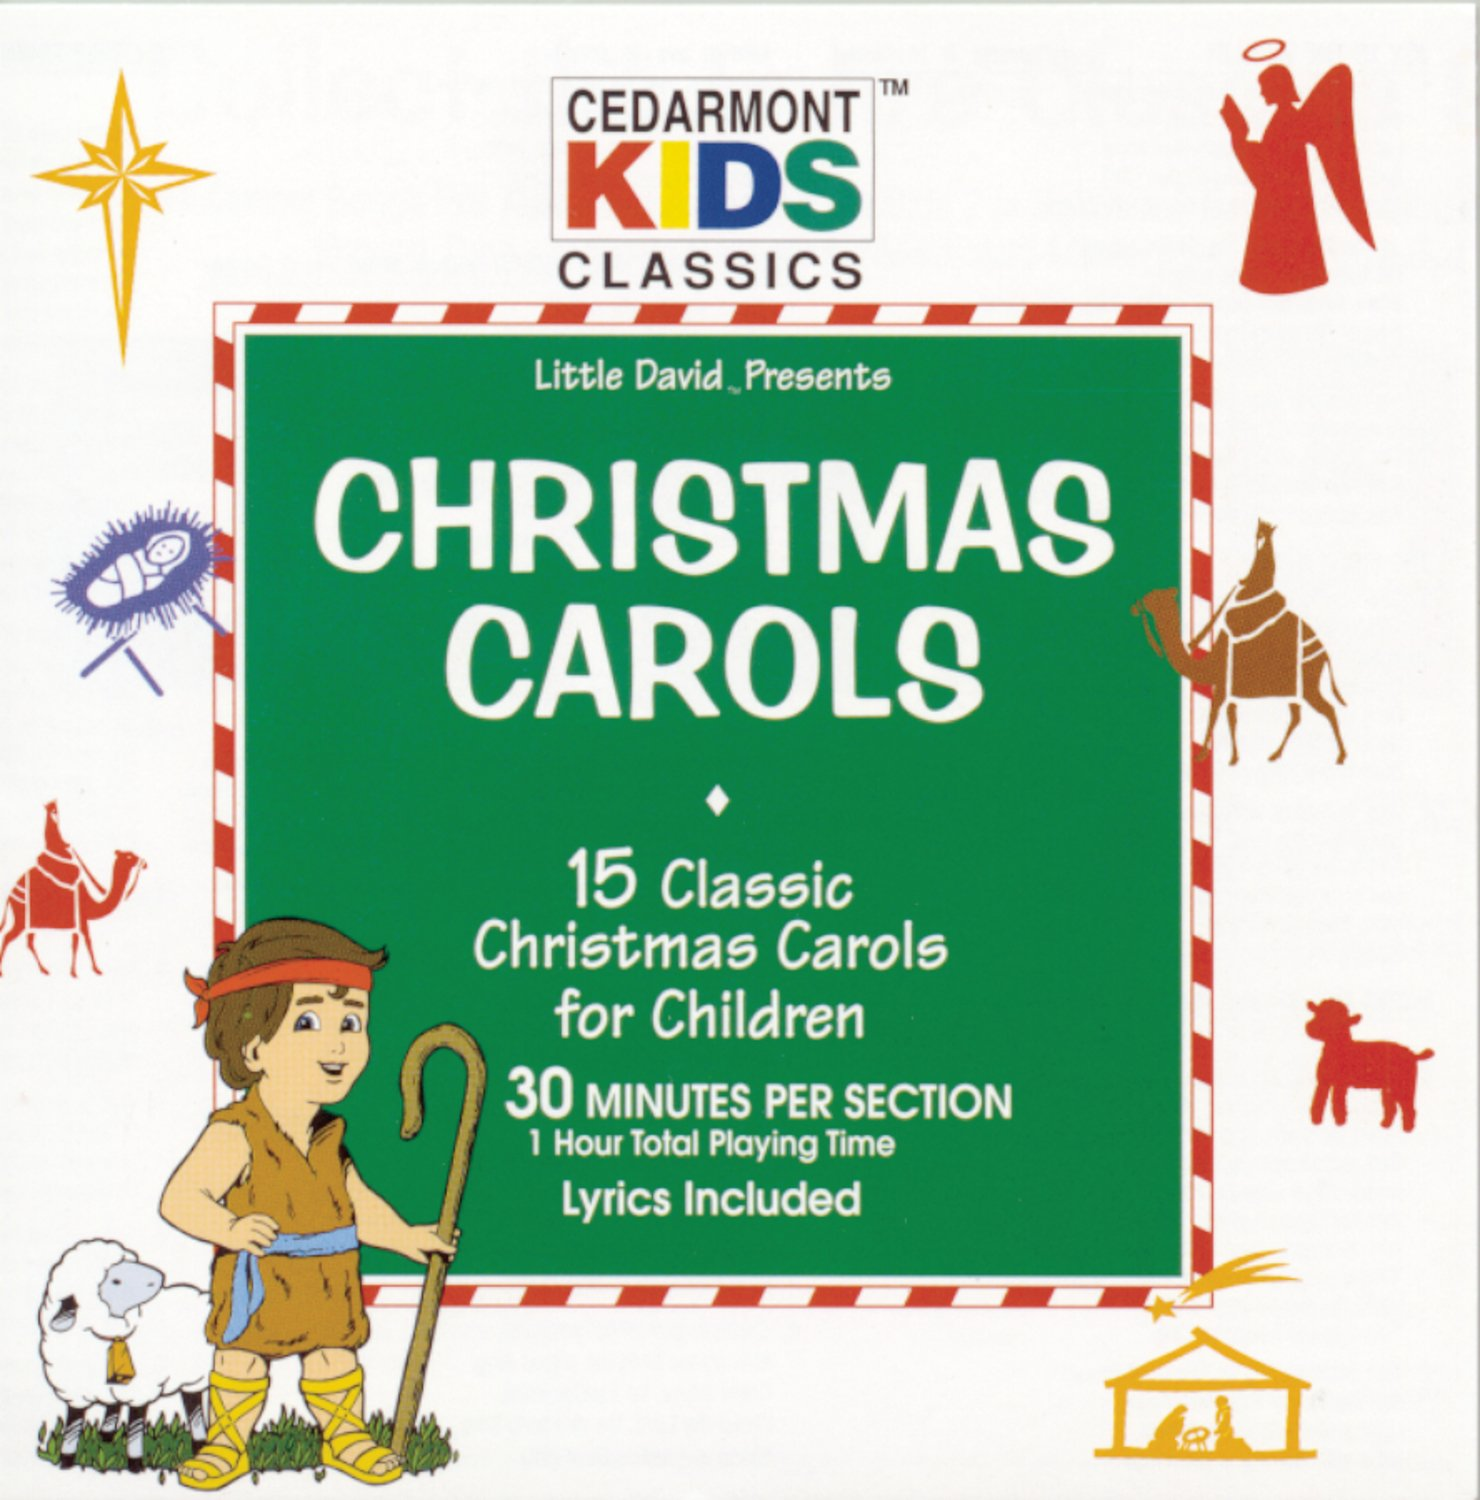 Cedarmont Kids - Christmas Carols - Amazon.com Music